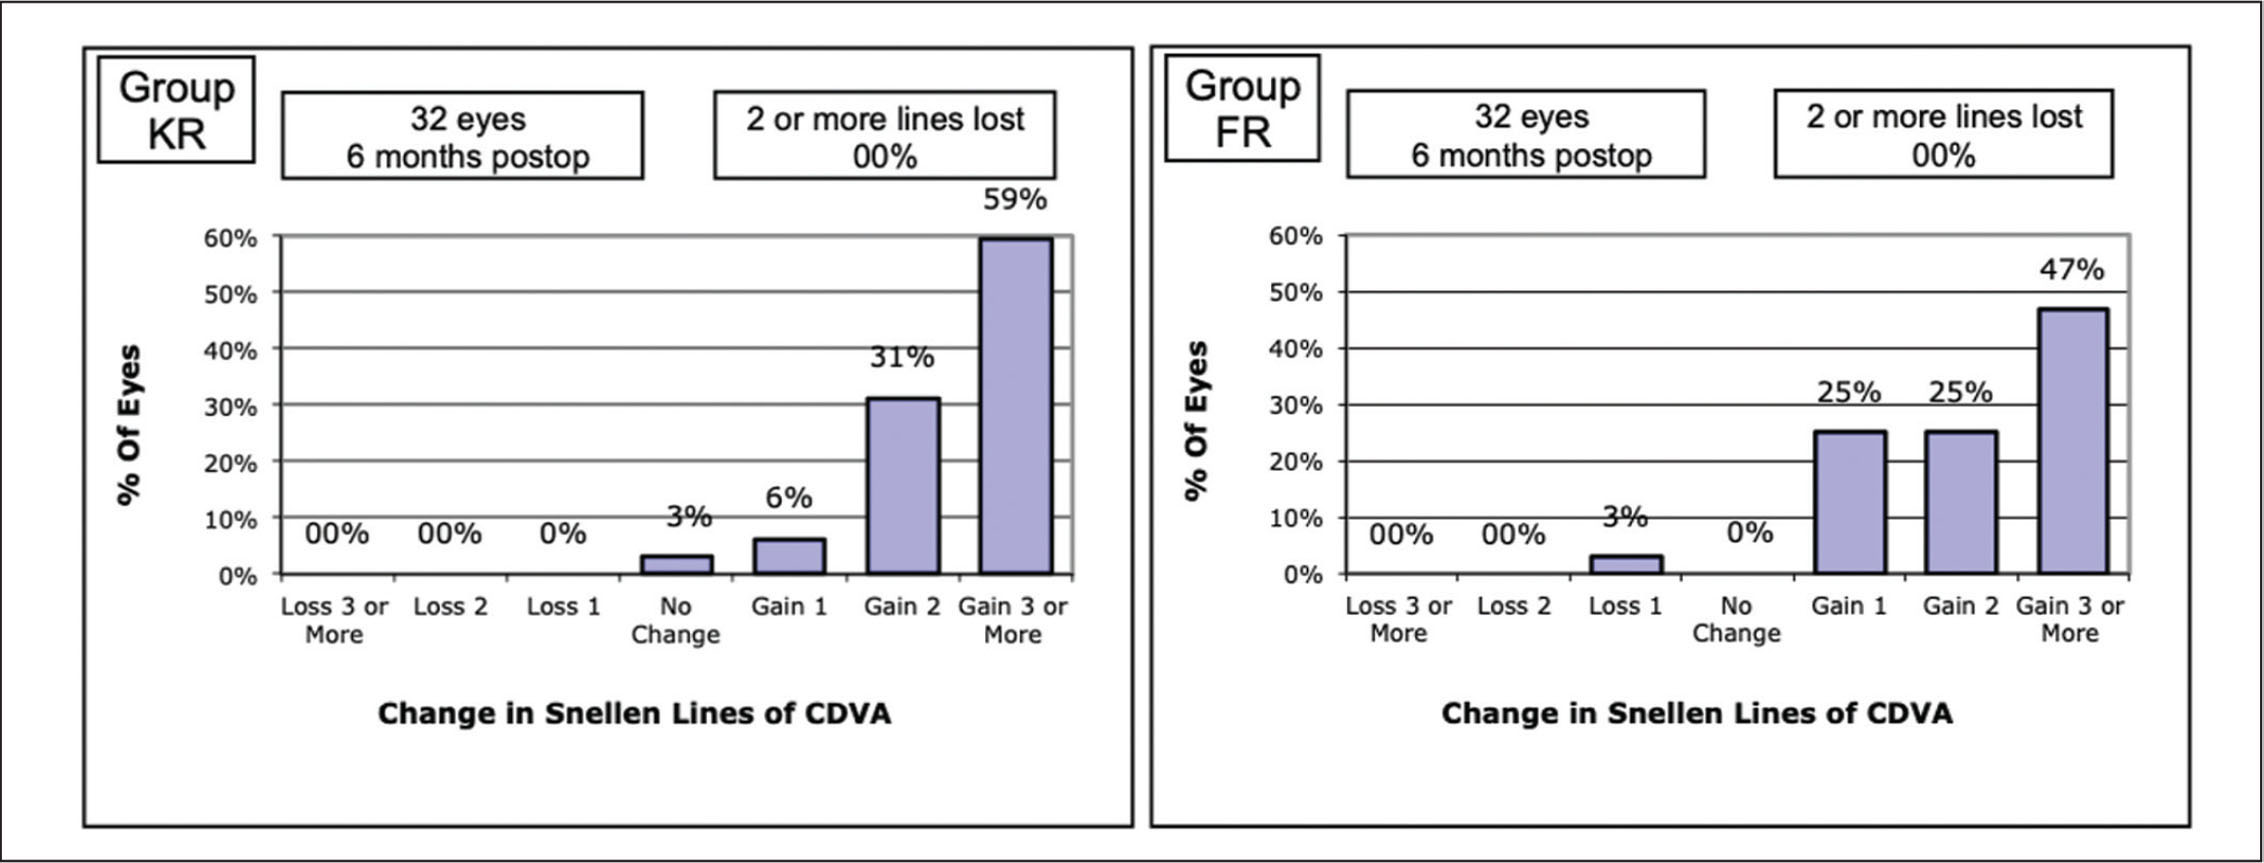 Safety. Change in Snellen lines of corrected distance visual acuity (CDVA) in the Keraring (Mediphacos, Belo Horizonte, Brazil) group (left) and in the Ferrara (AJL Ophthalmics, Vitoria, Spain) group (right).